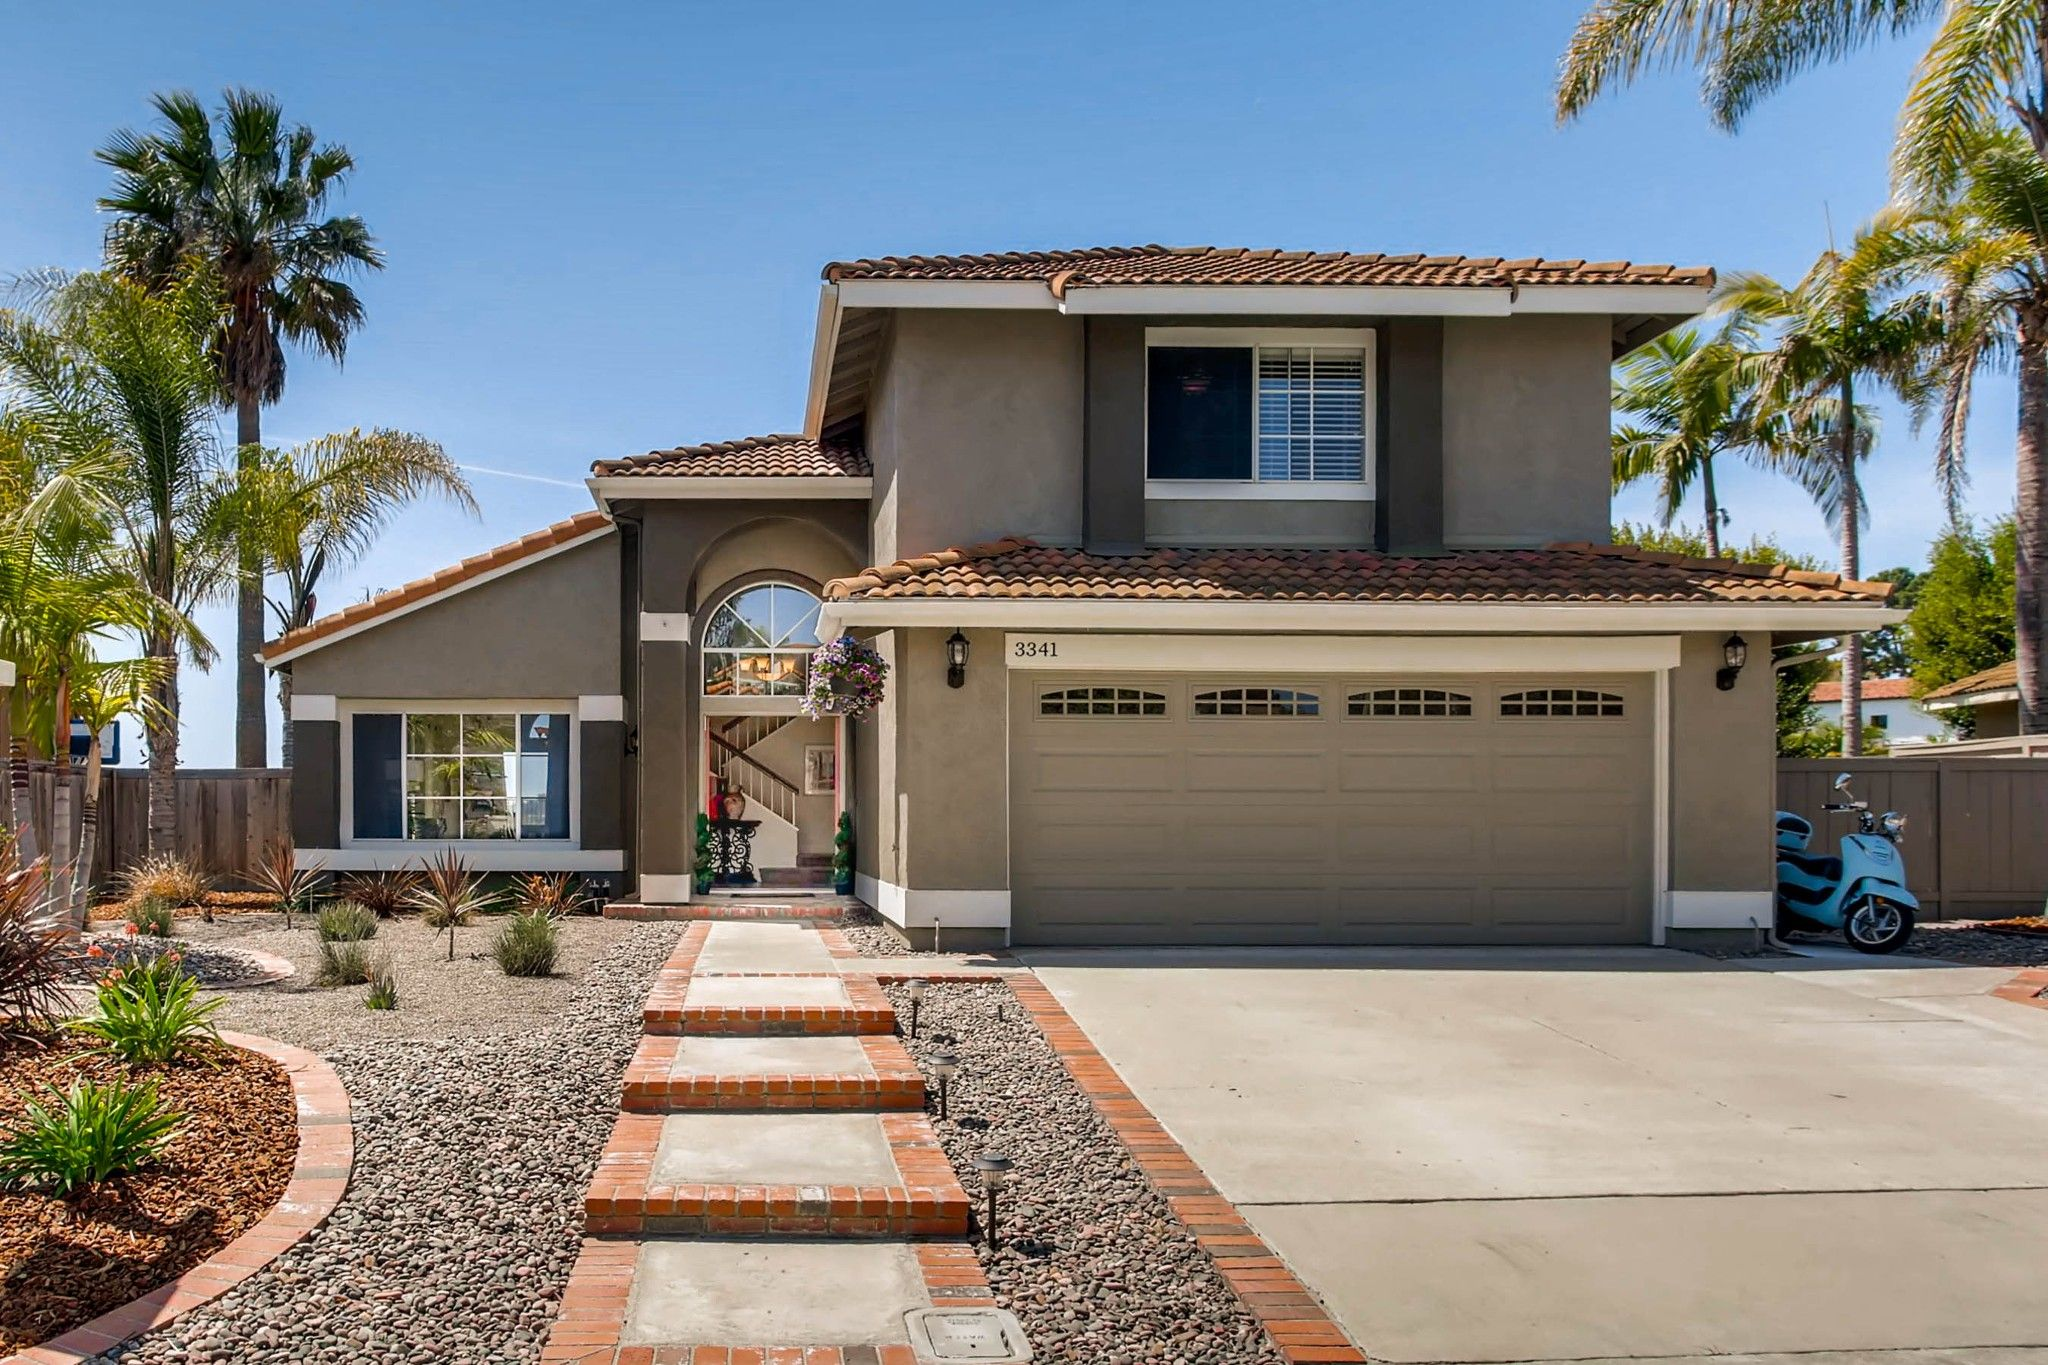 Photo 2: Photos: House for sale (San Diego)  : 5 bedrooms : 3341 Golfers Dr in Oceanside